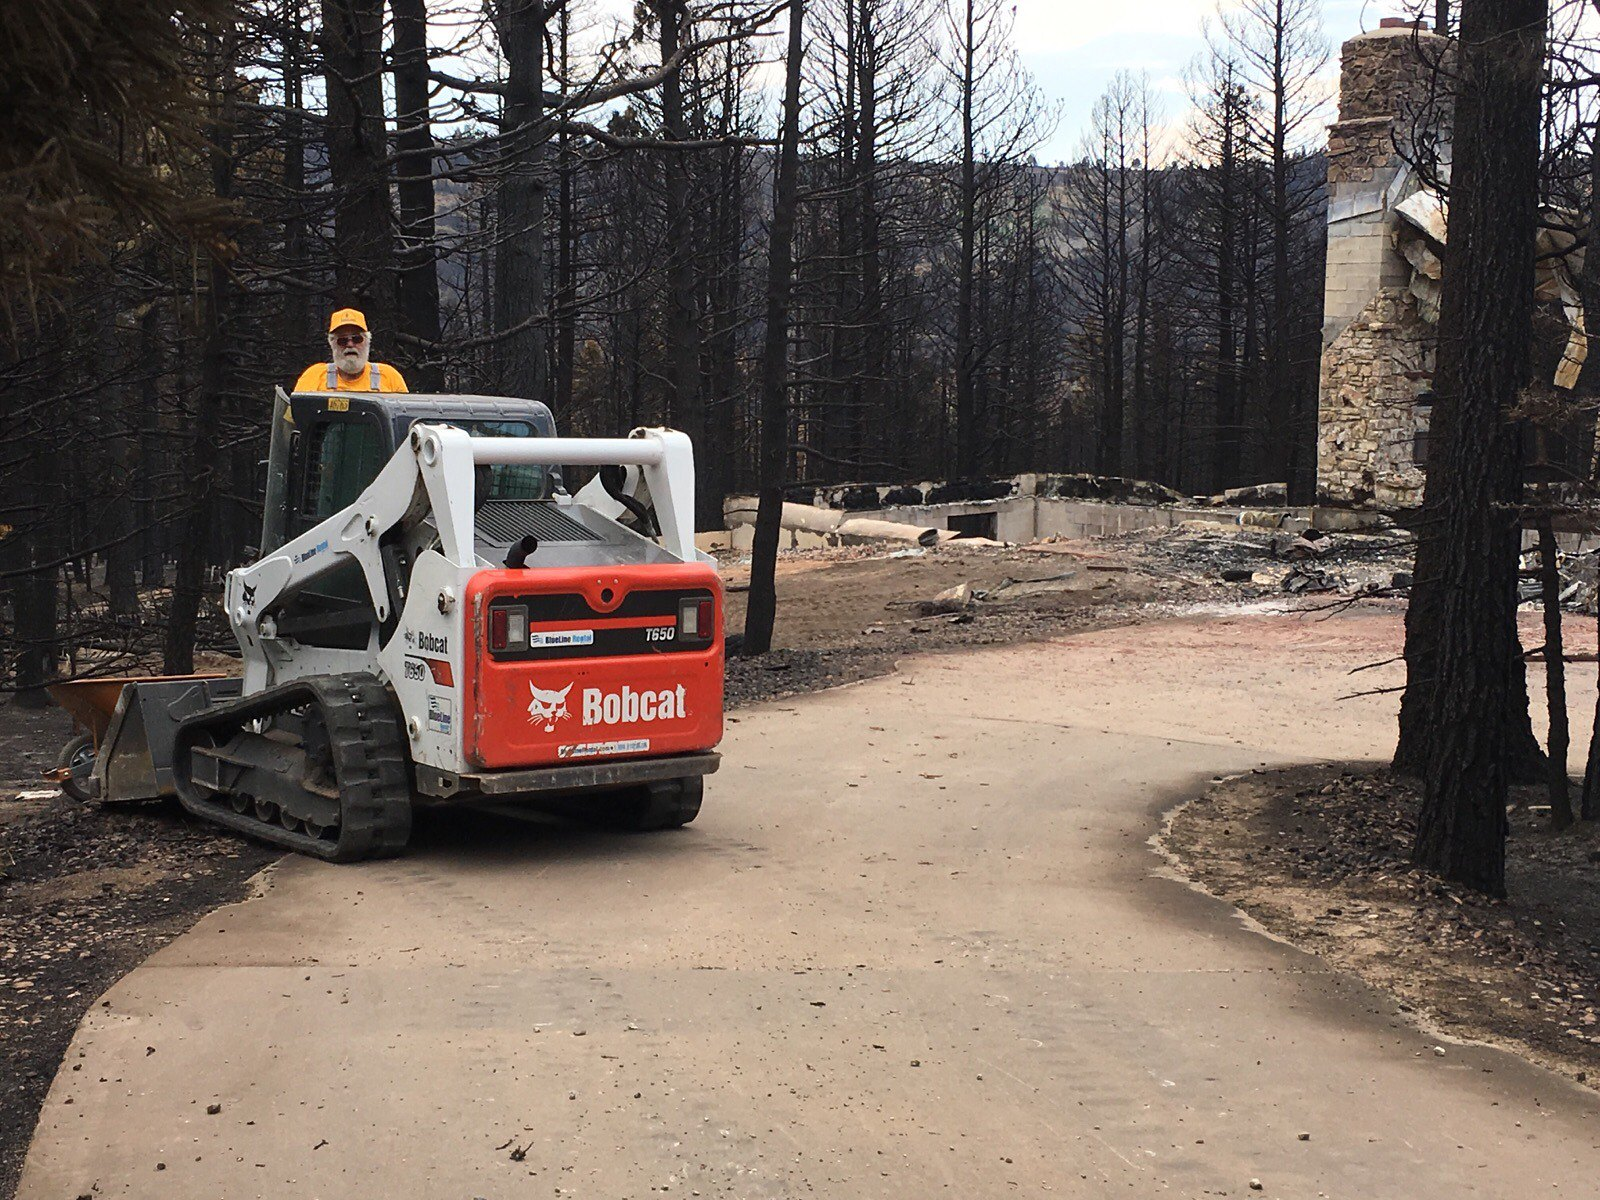 Southern Baptists respond to Colorado forest fires